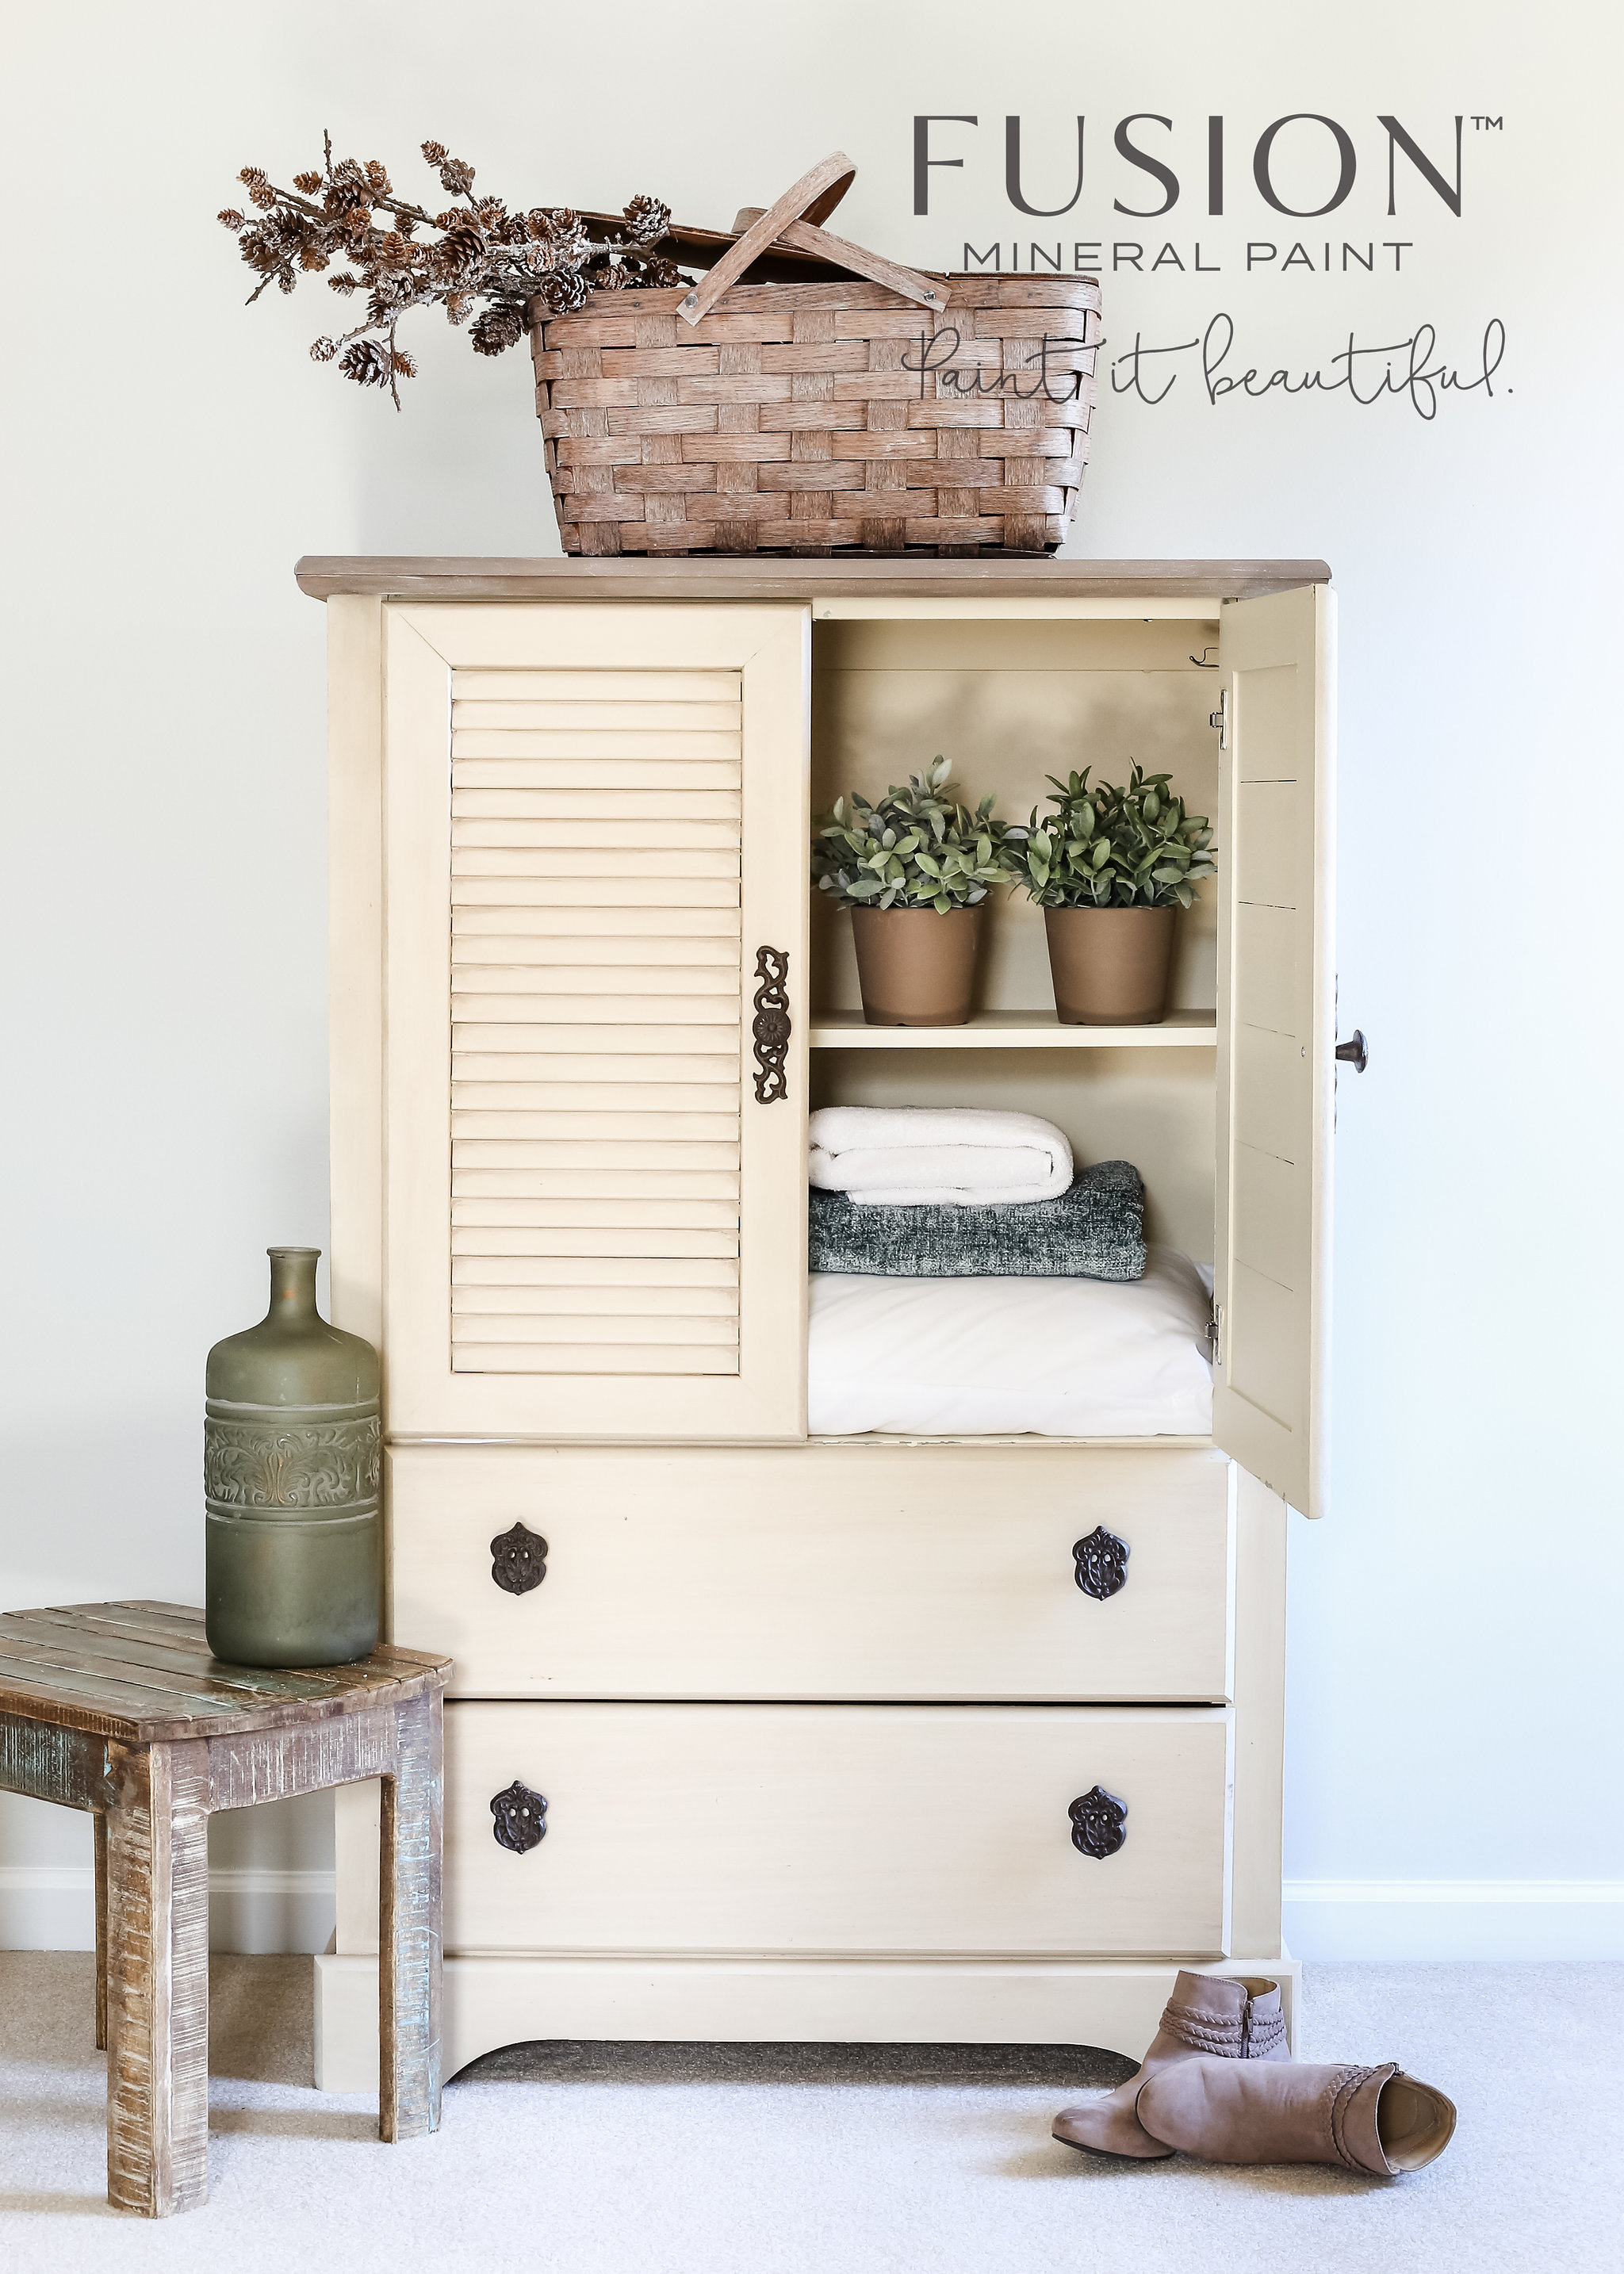 Farmhouse Style Fixer Upper inspired linen chest painted in Plaster by Fusion Mineral Paint. This stunning piece is perfect for a Farmhouse Look!